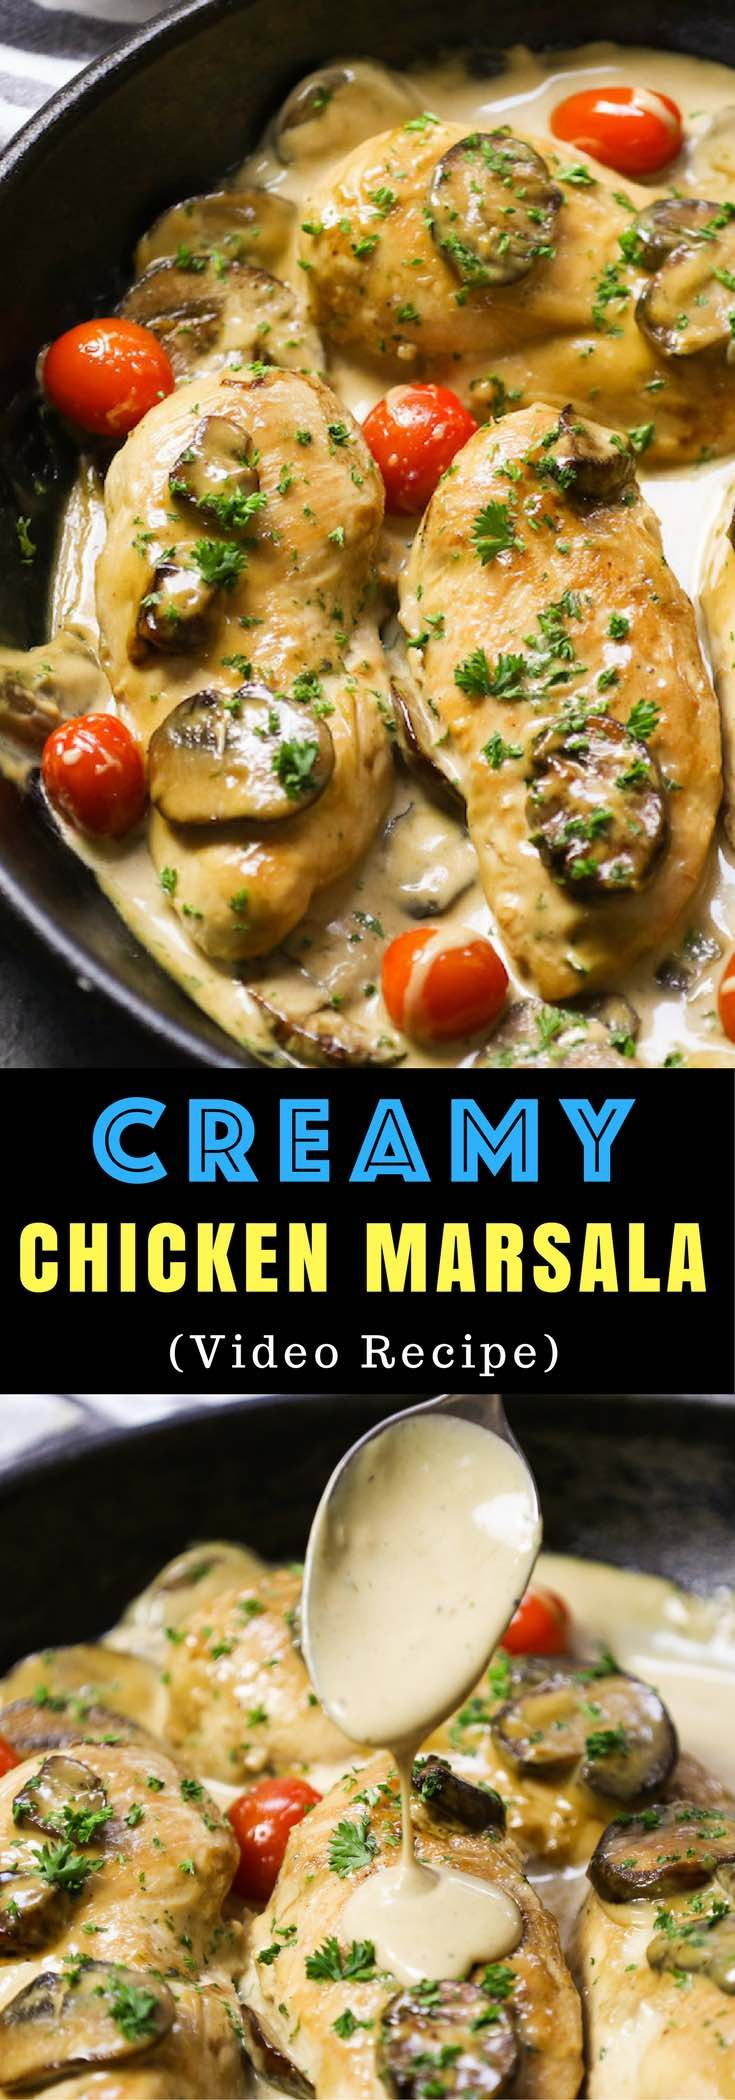 44 best back to school recipes images on pinterest school easy creamy chicken marsala with video forumfinder Choice Image